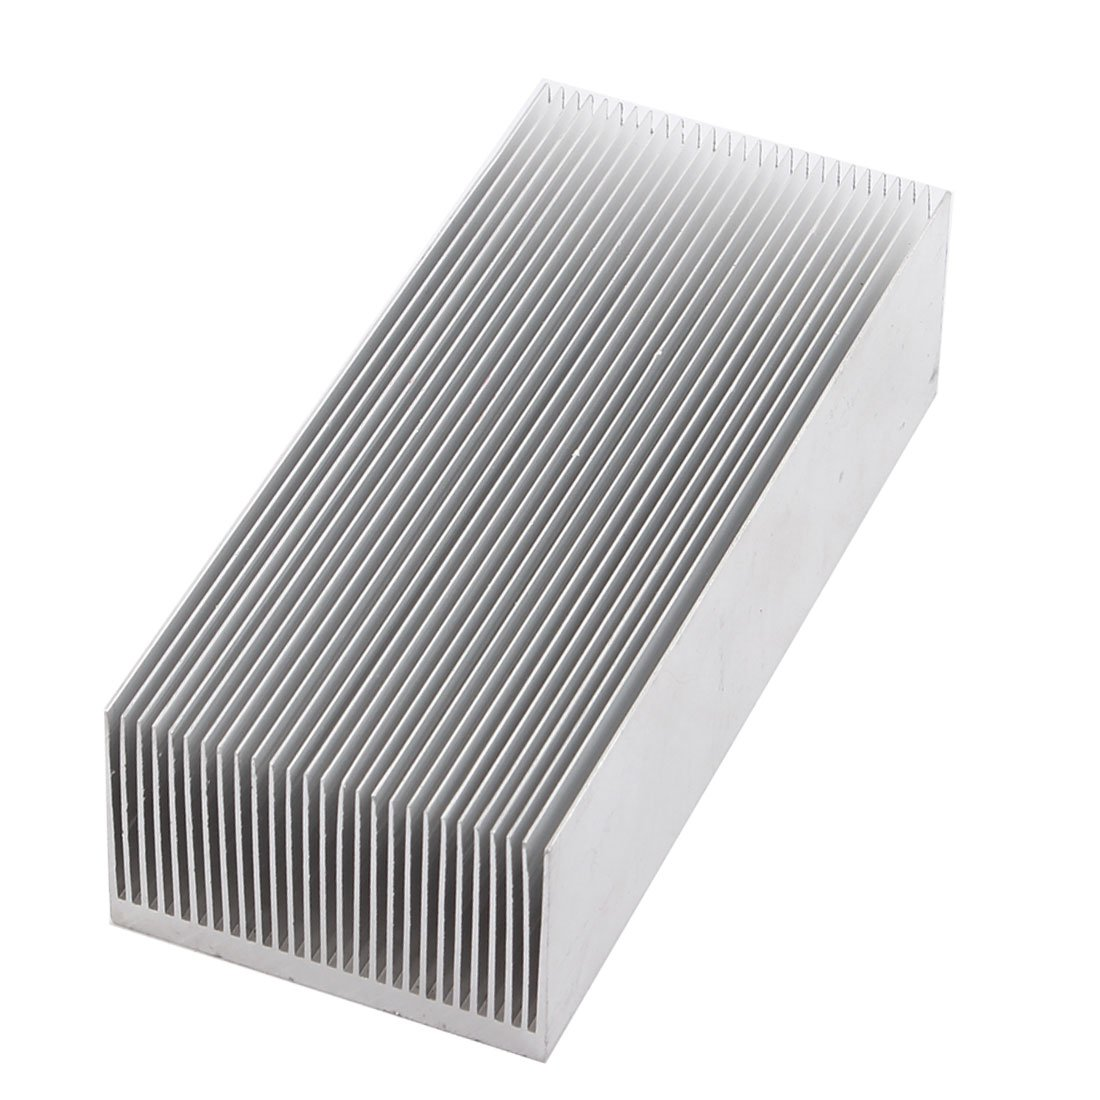 Uxcell a14111400ux0256 uxcell Aluminum Heat Radiator Heatsink Cooling Fan 150x69x37mm Silver Tone by uxcell (Image #1)